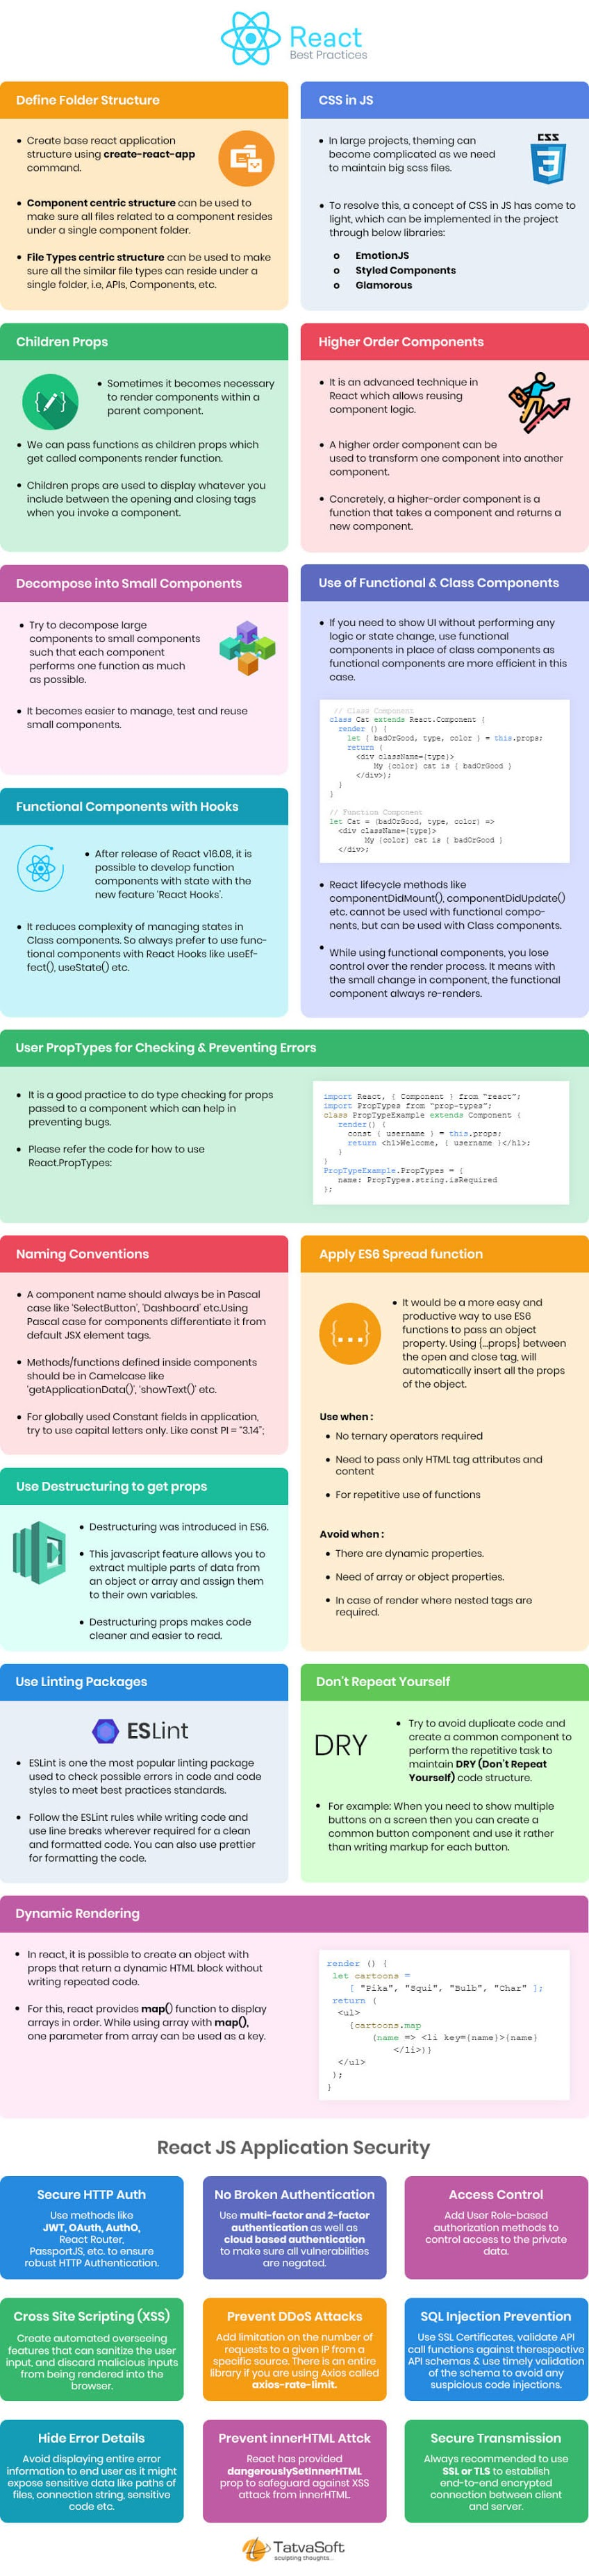 Best Development practices for react #infographic #Security #Security problems #infographics